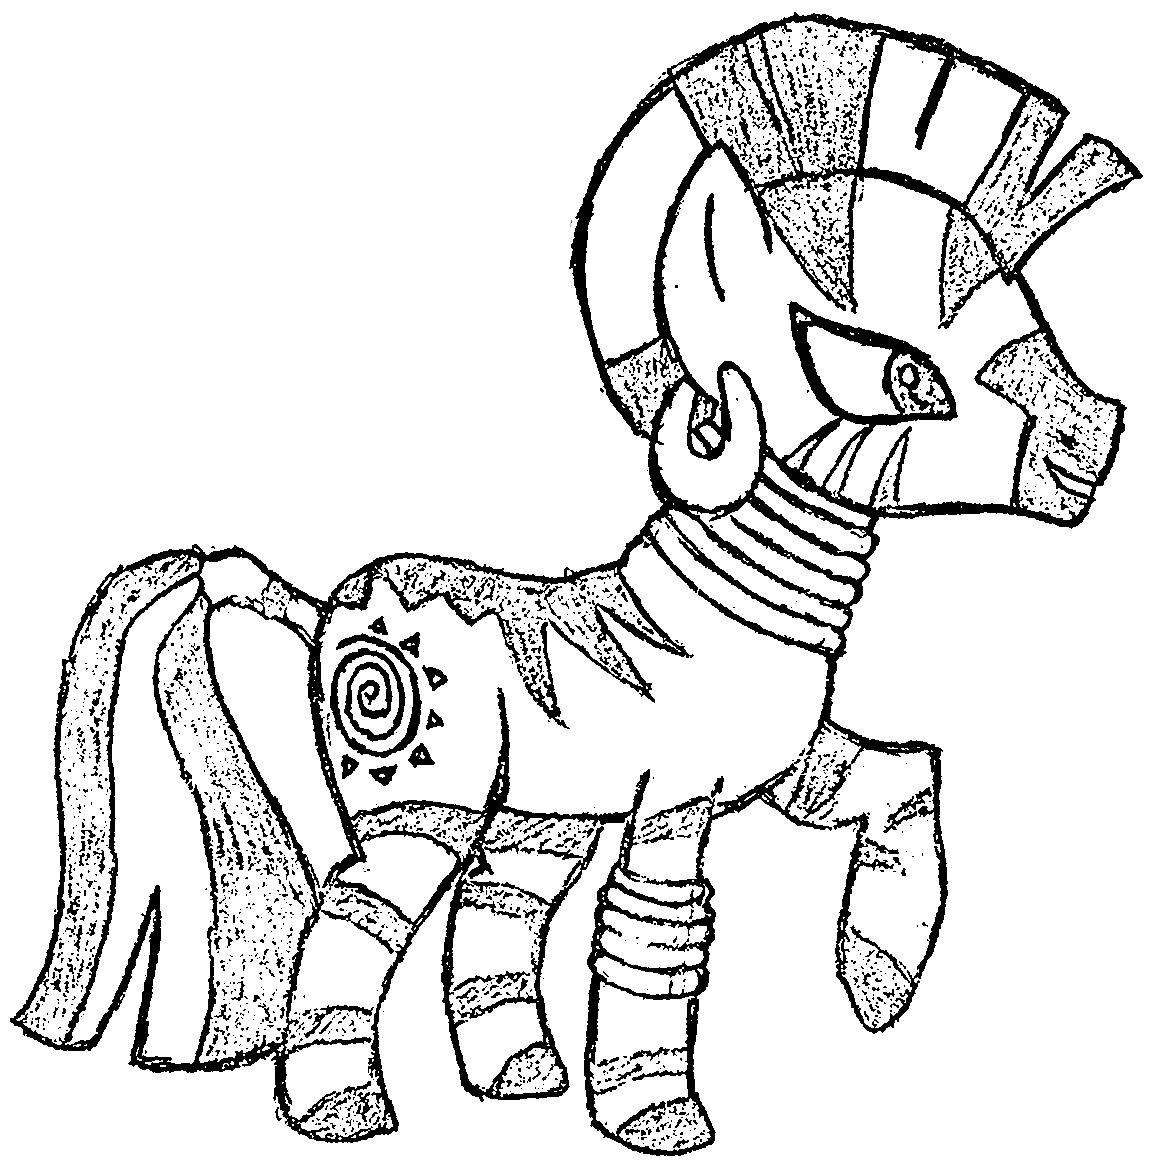 My Little Pony Zecora Coloring Pages : Sketch zecora the zebra coloring page wecoloringpage